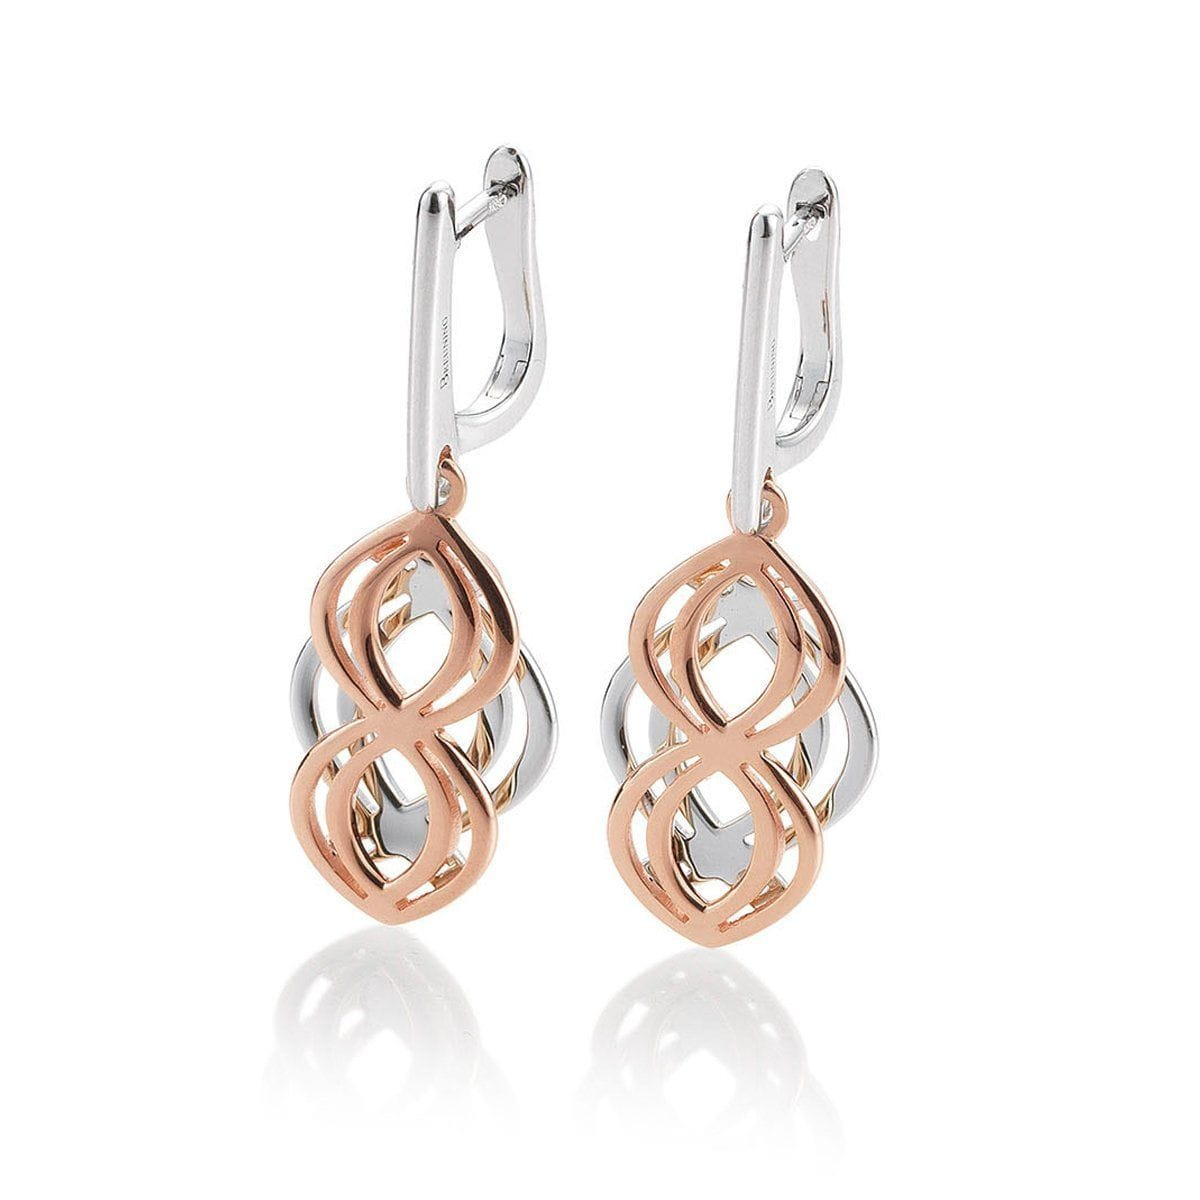 Rose Gold Plated Sterling Silver Earrings - 14/02630-Breuning-Renee Taylor Gallery